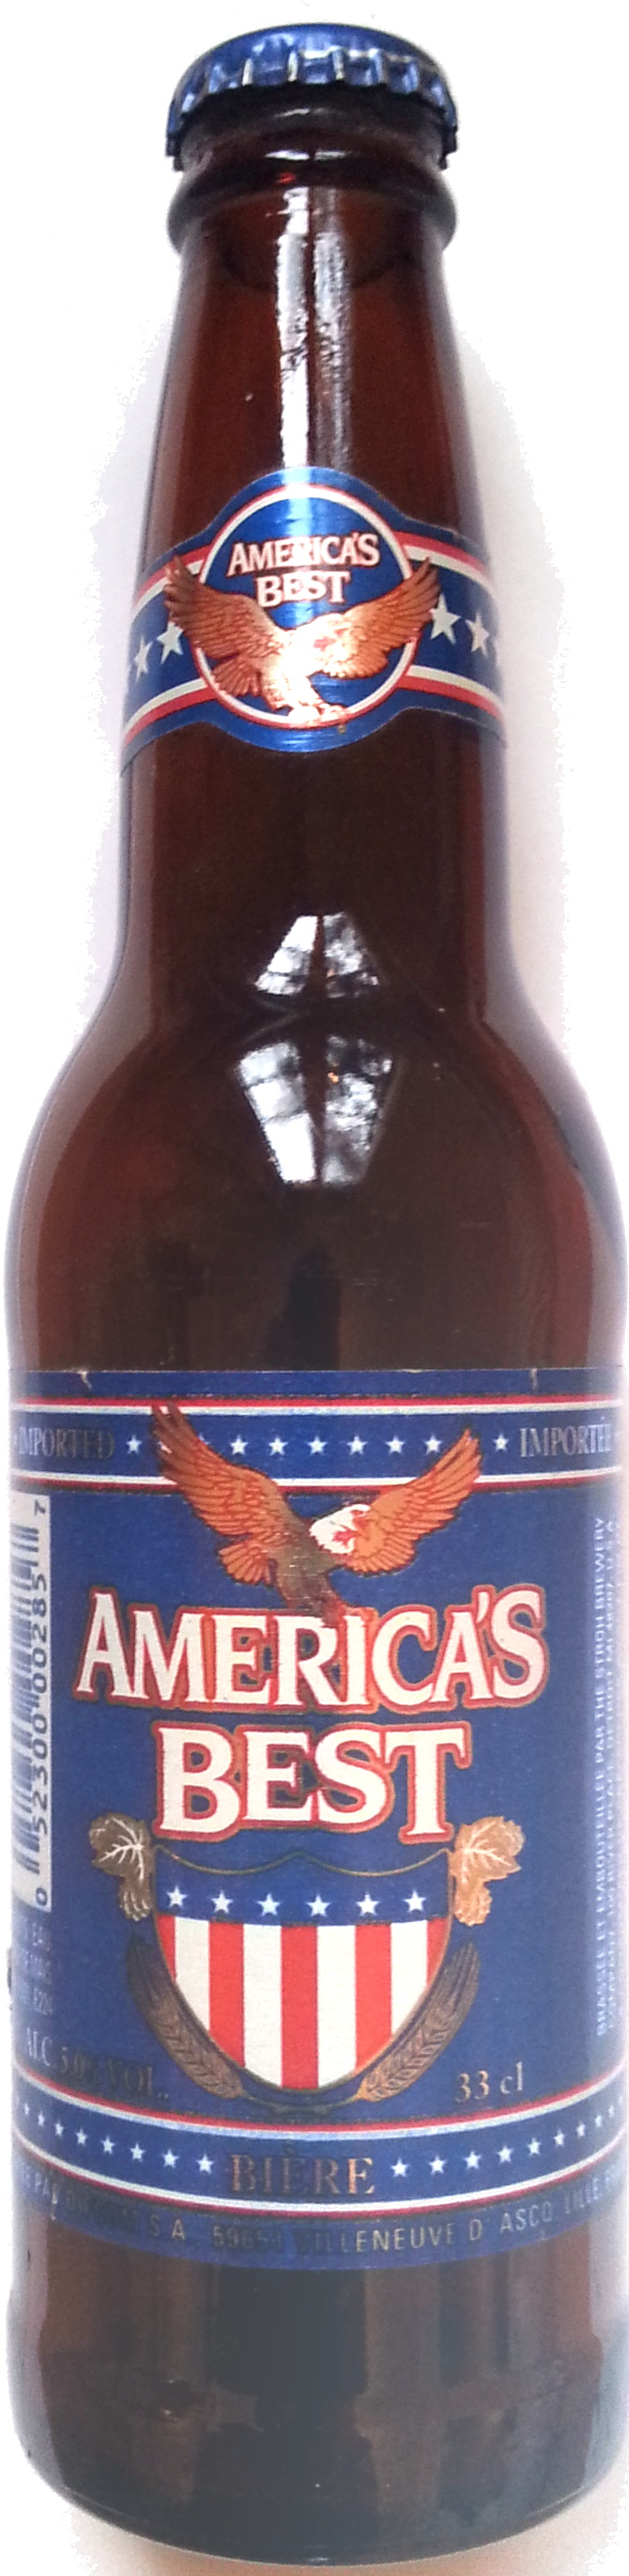 America's best - Product - fr